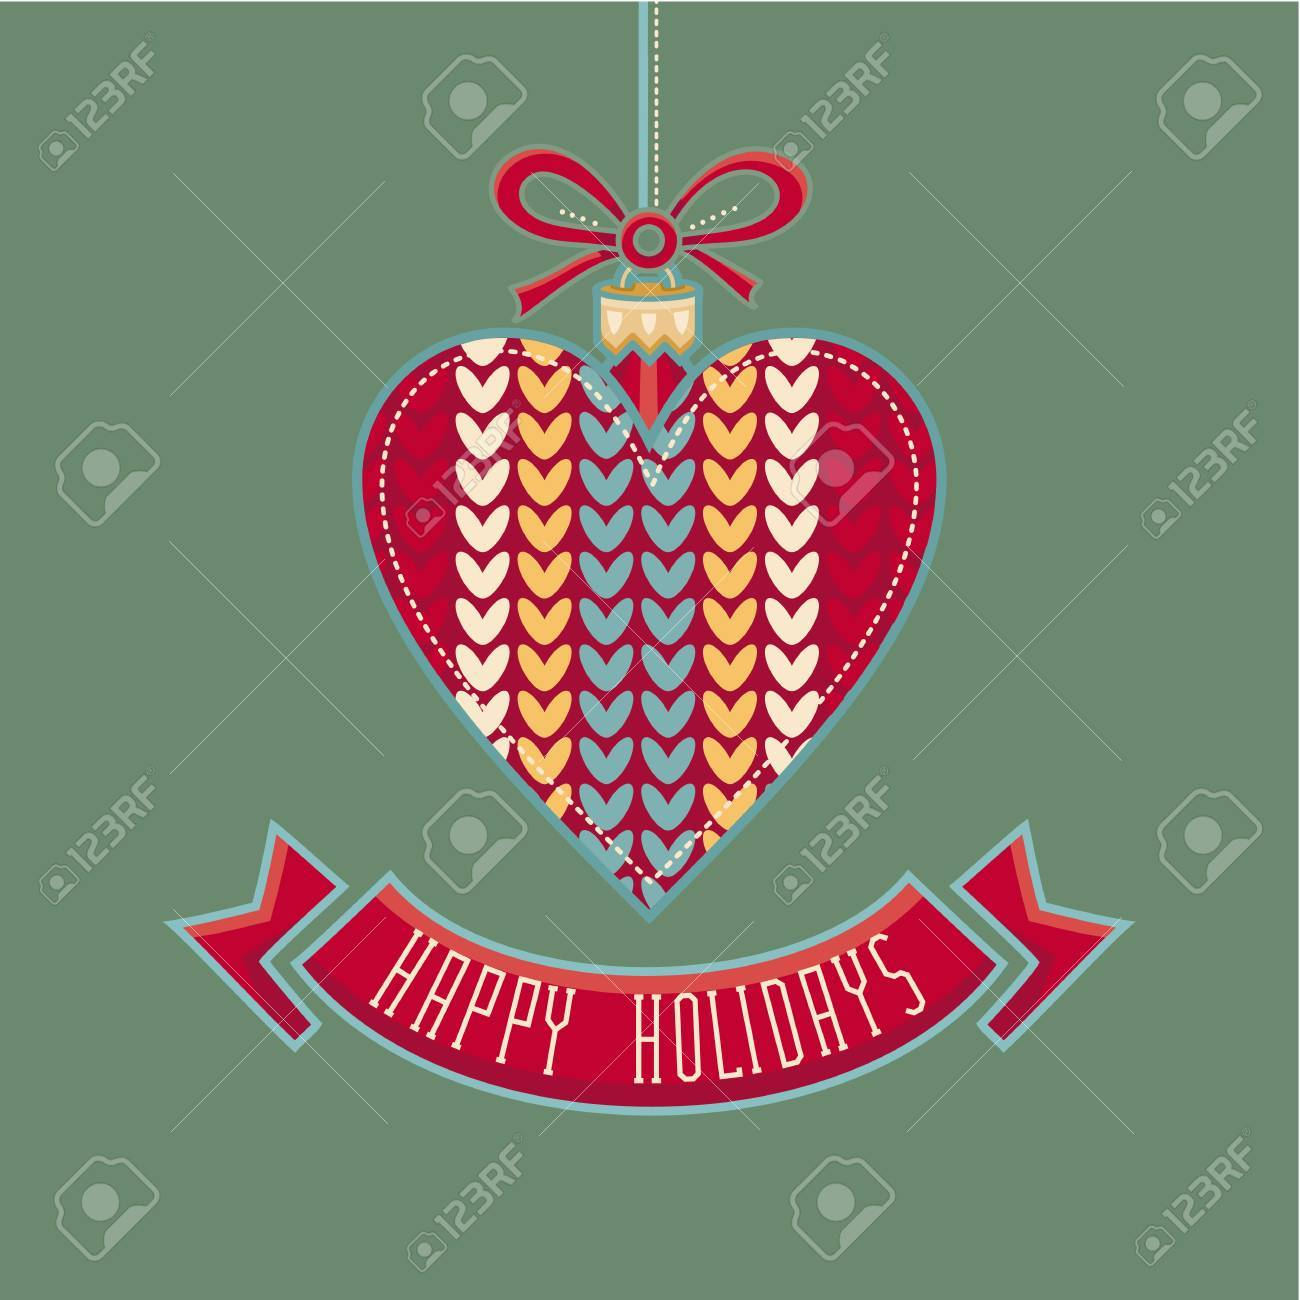 Christmas Card Christmas Greeting Happy Holidays Winter Holiday